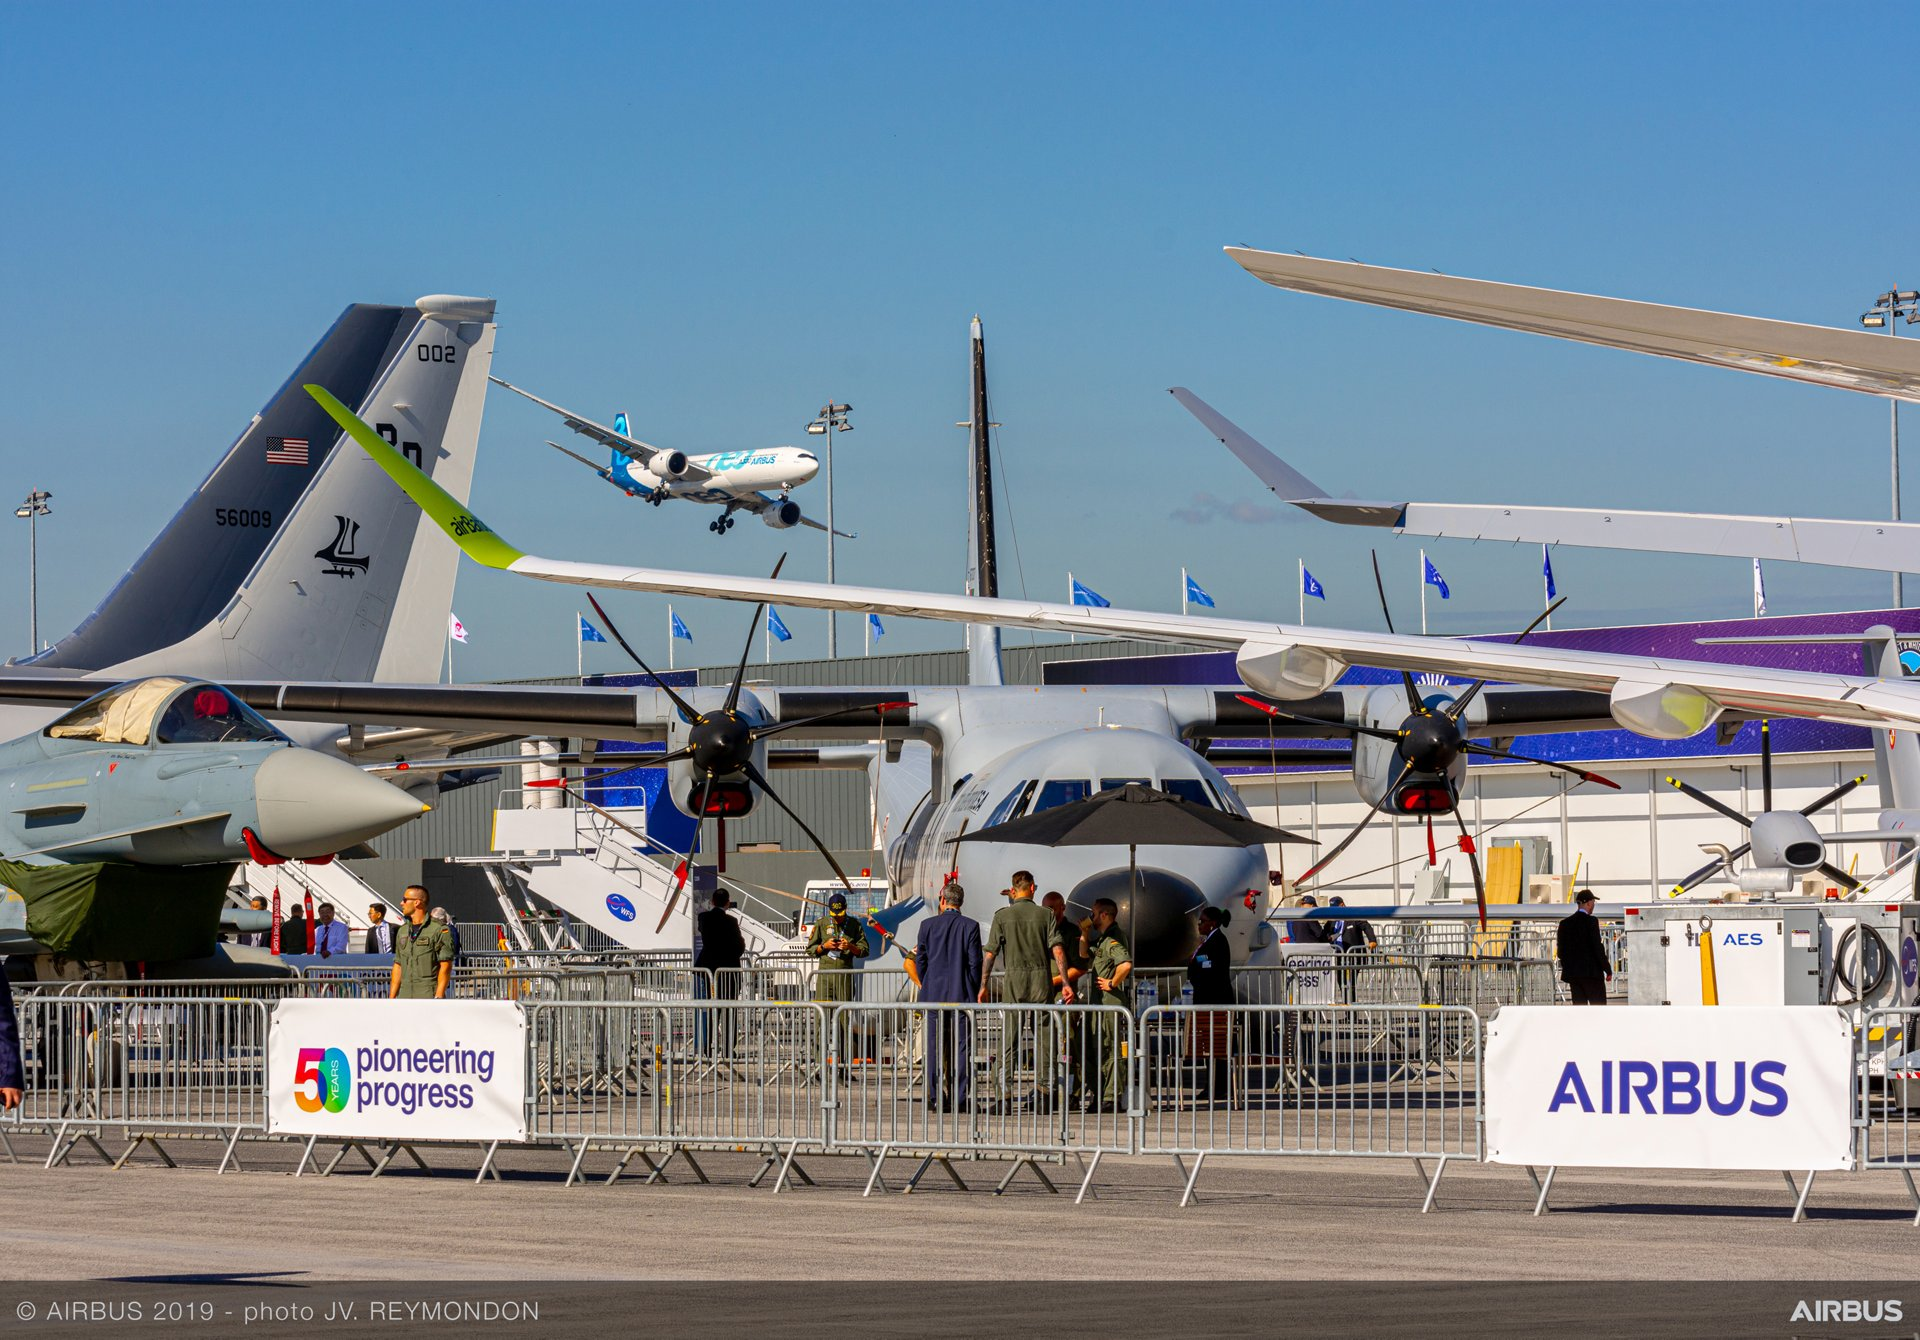 Paris Air Show: Day 1 highlights